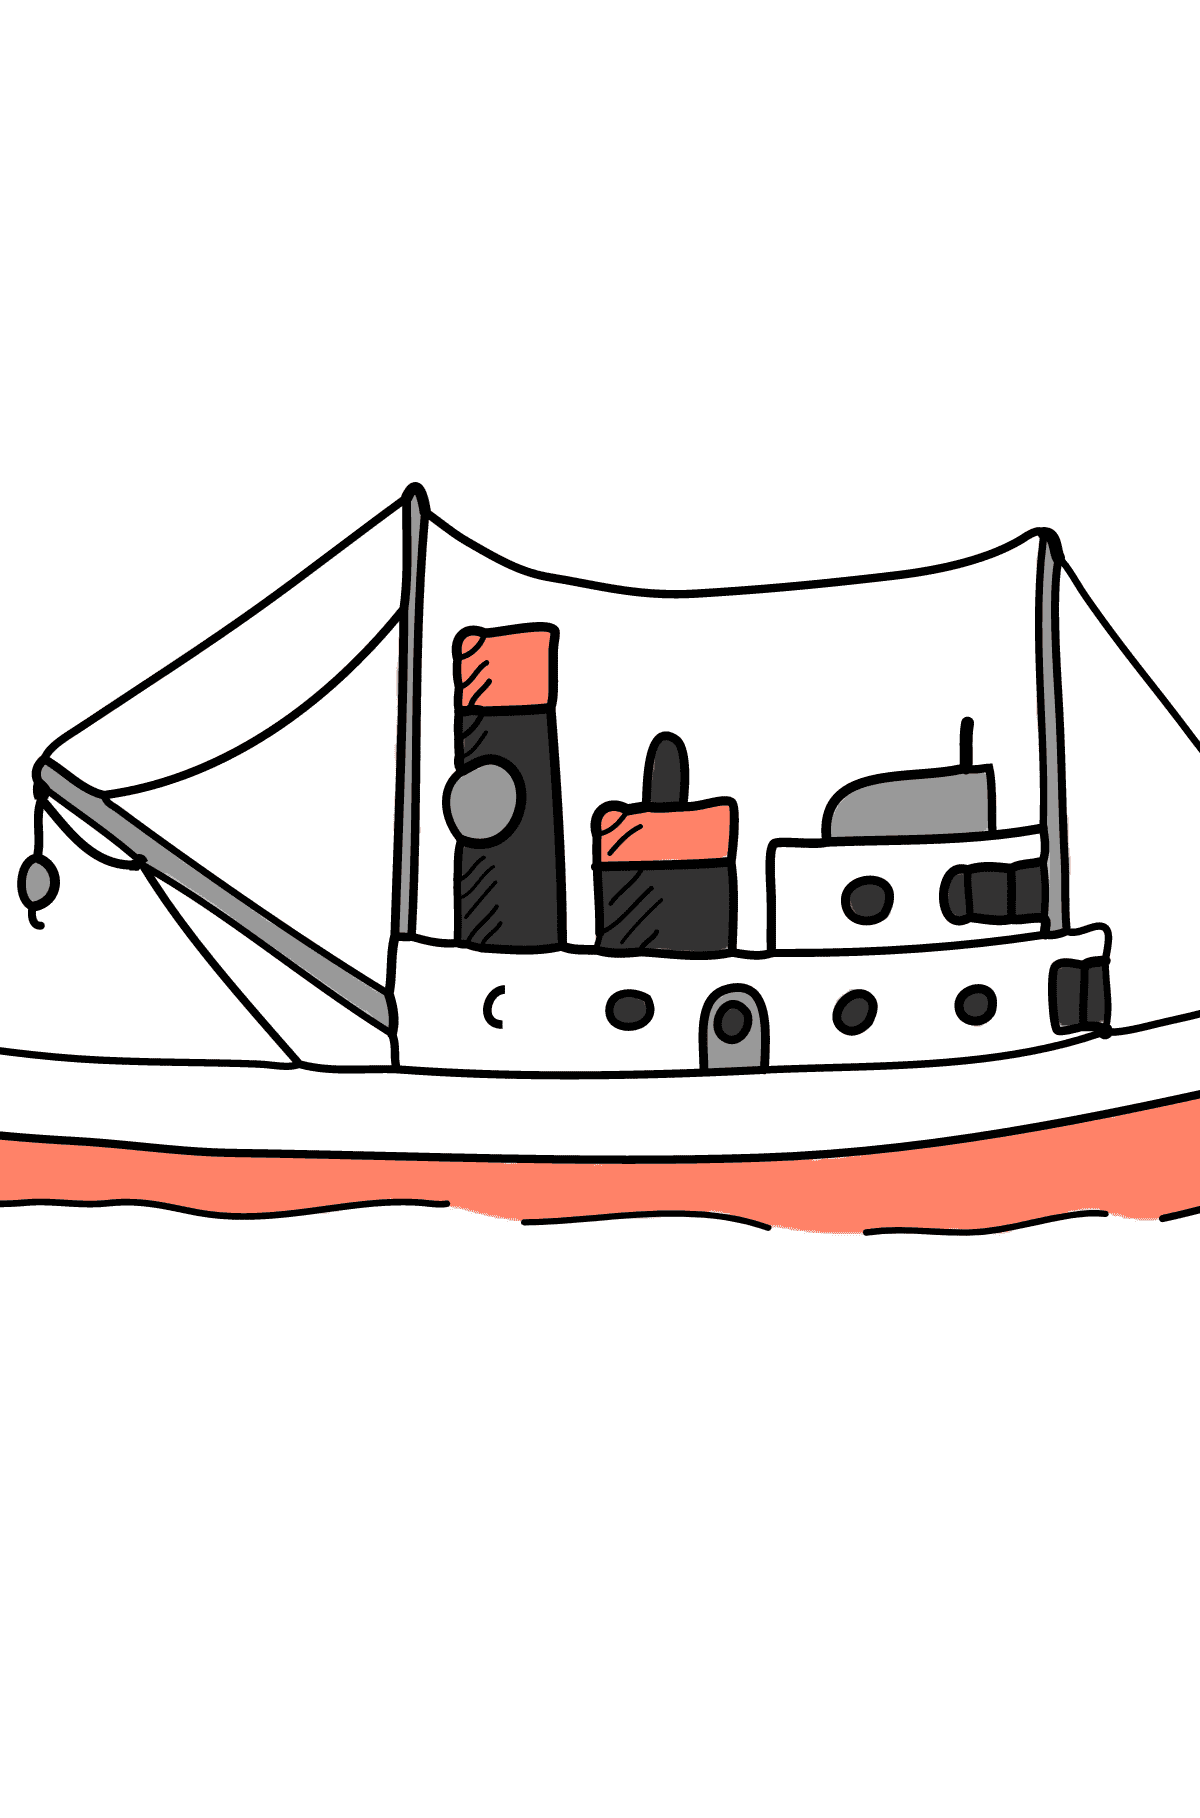 Coloring Page - A Cargo Ship - Coloring Pages for Children